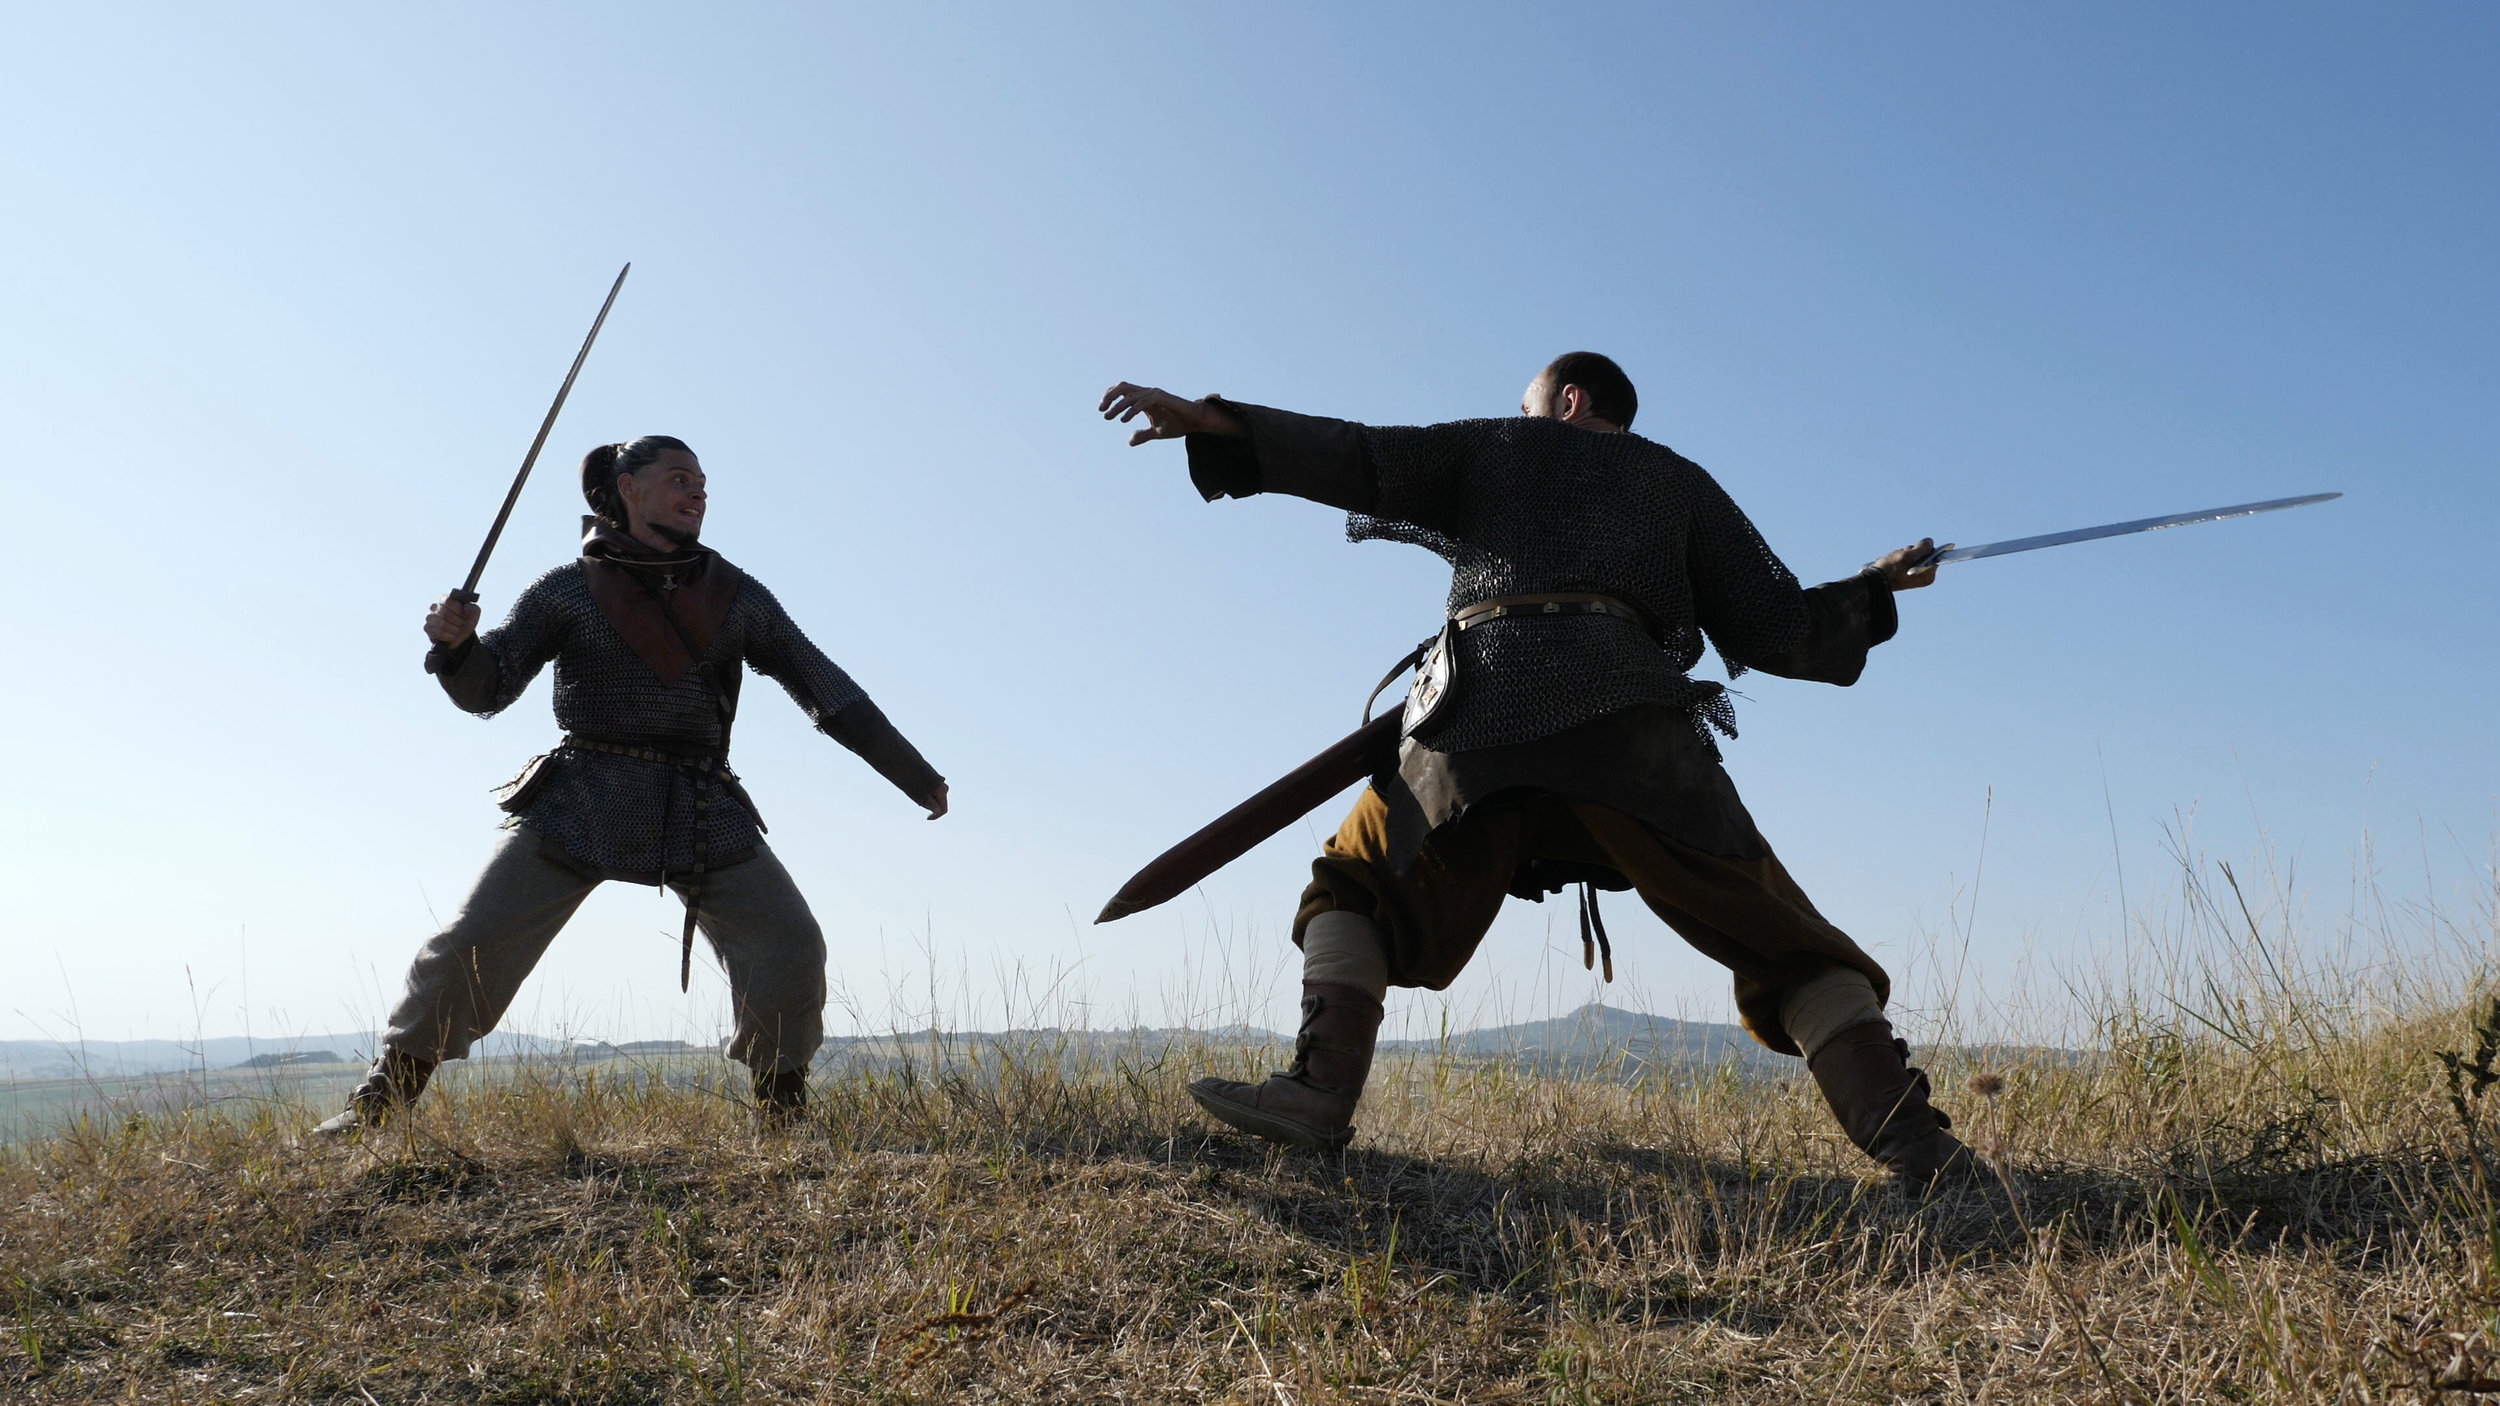 Action Combat - Fighters